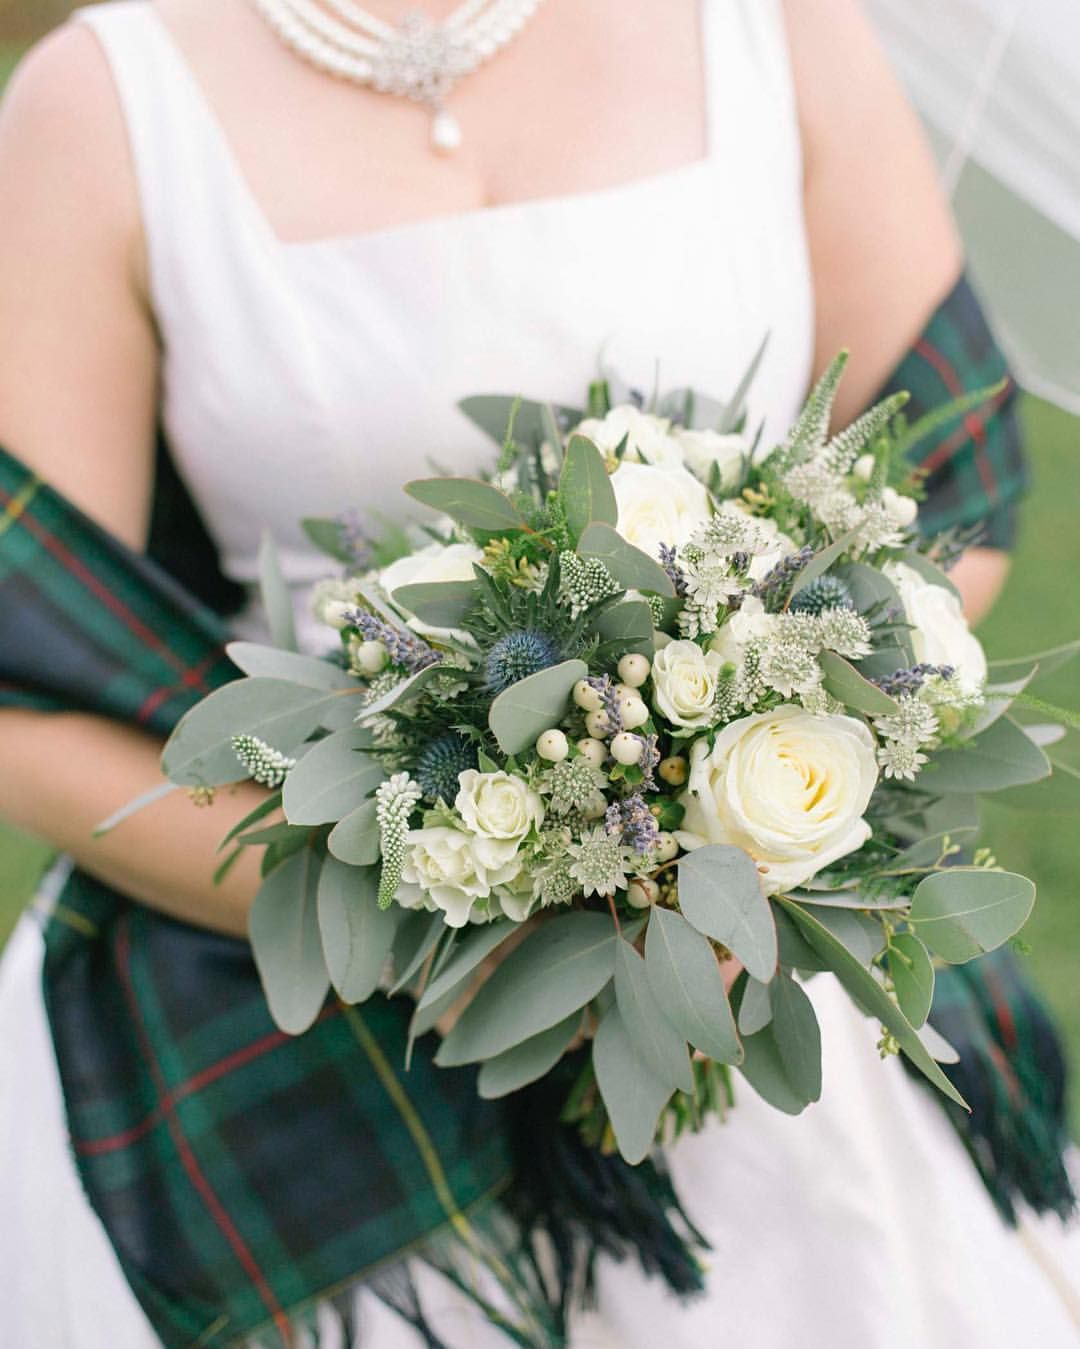 Wedding Flowers Edinburgh: Gorgeous #gatheredstyle #bouquet From A